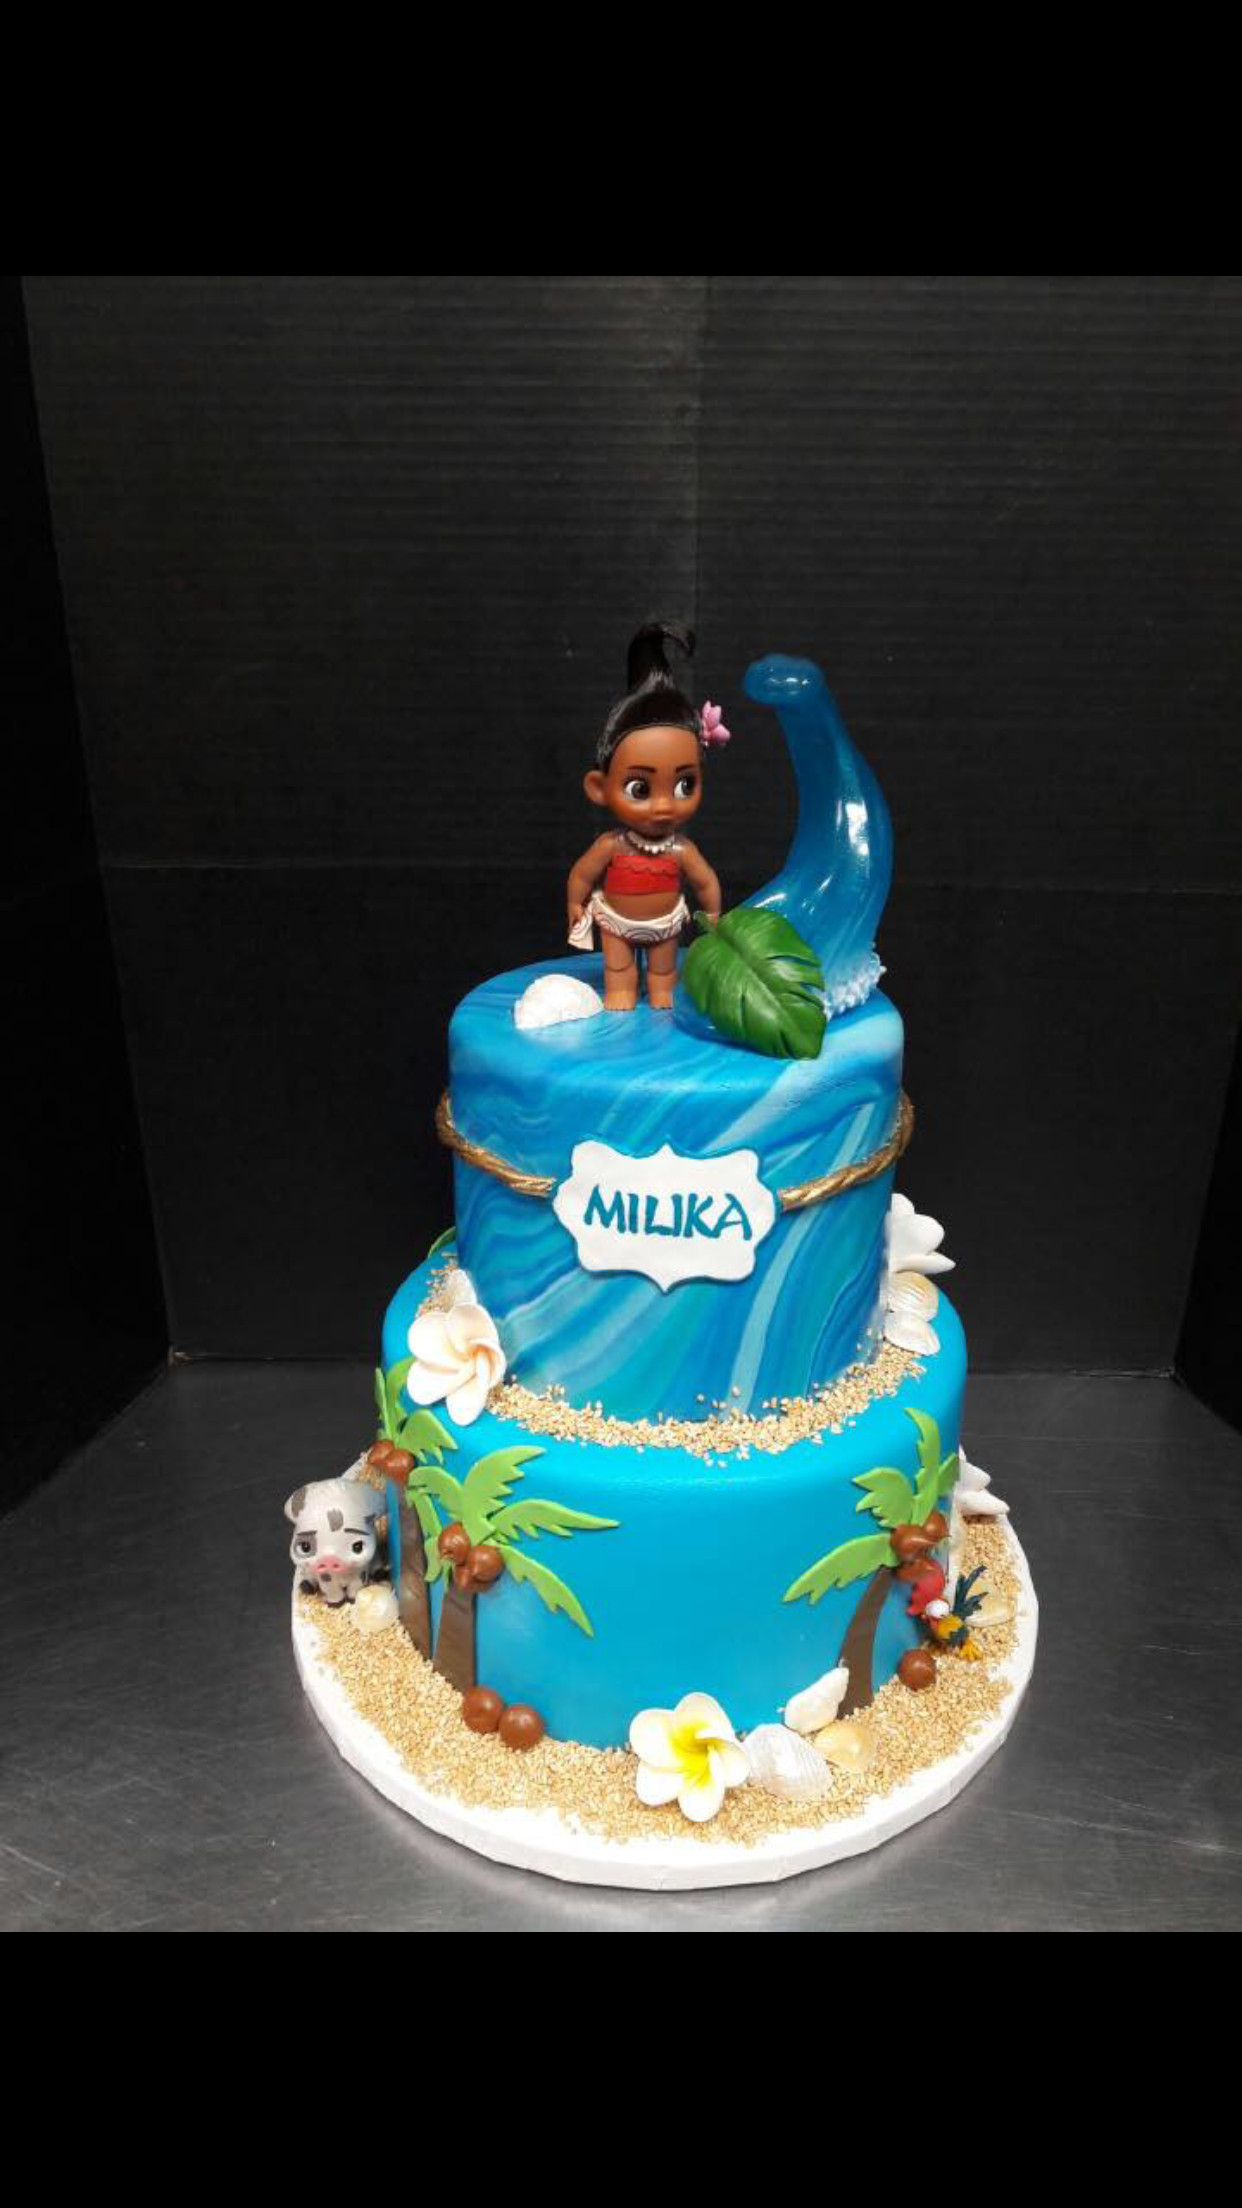 Moana Birthday Cake Ideas  Disney Moana birthday cake disneyprincess